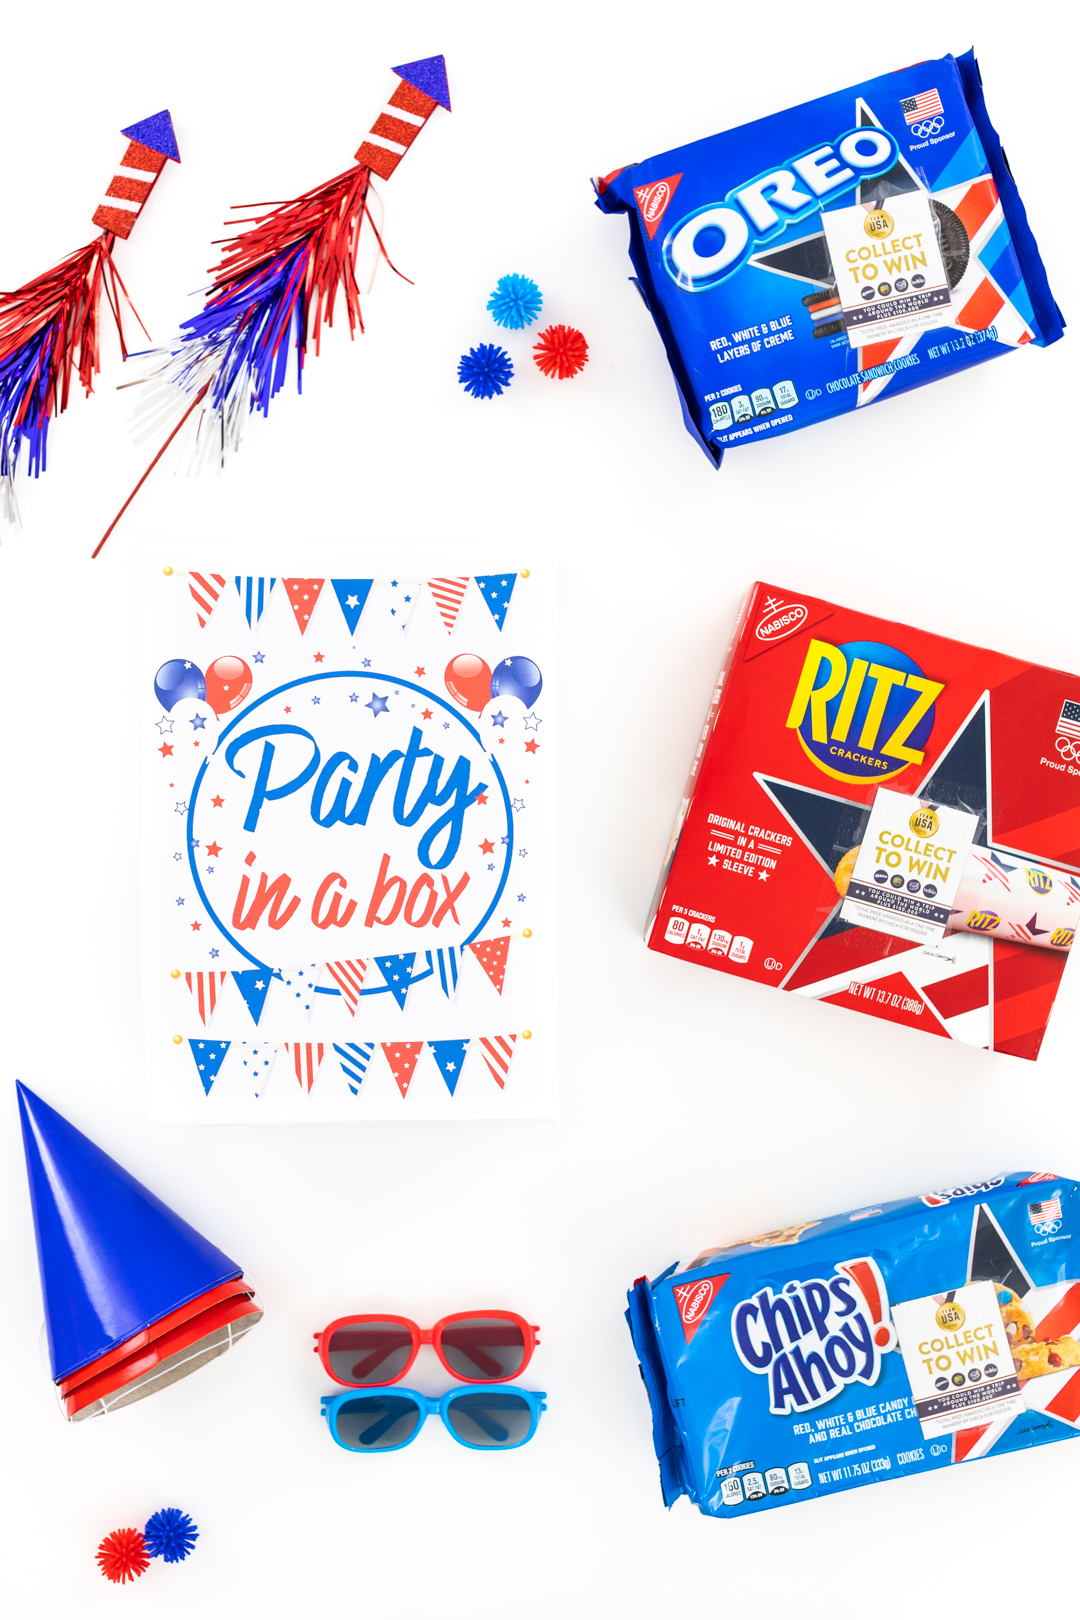 Party in a box for 4th of july